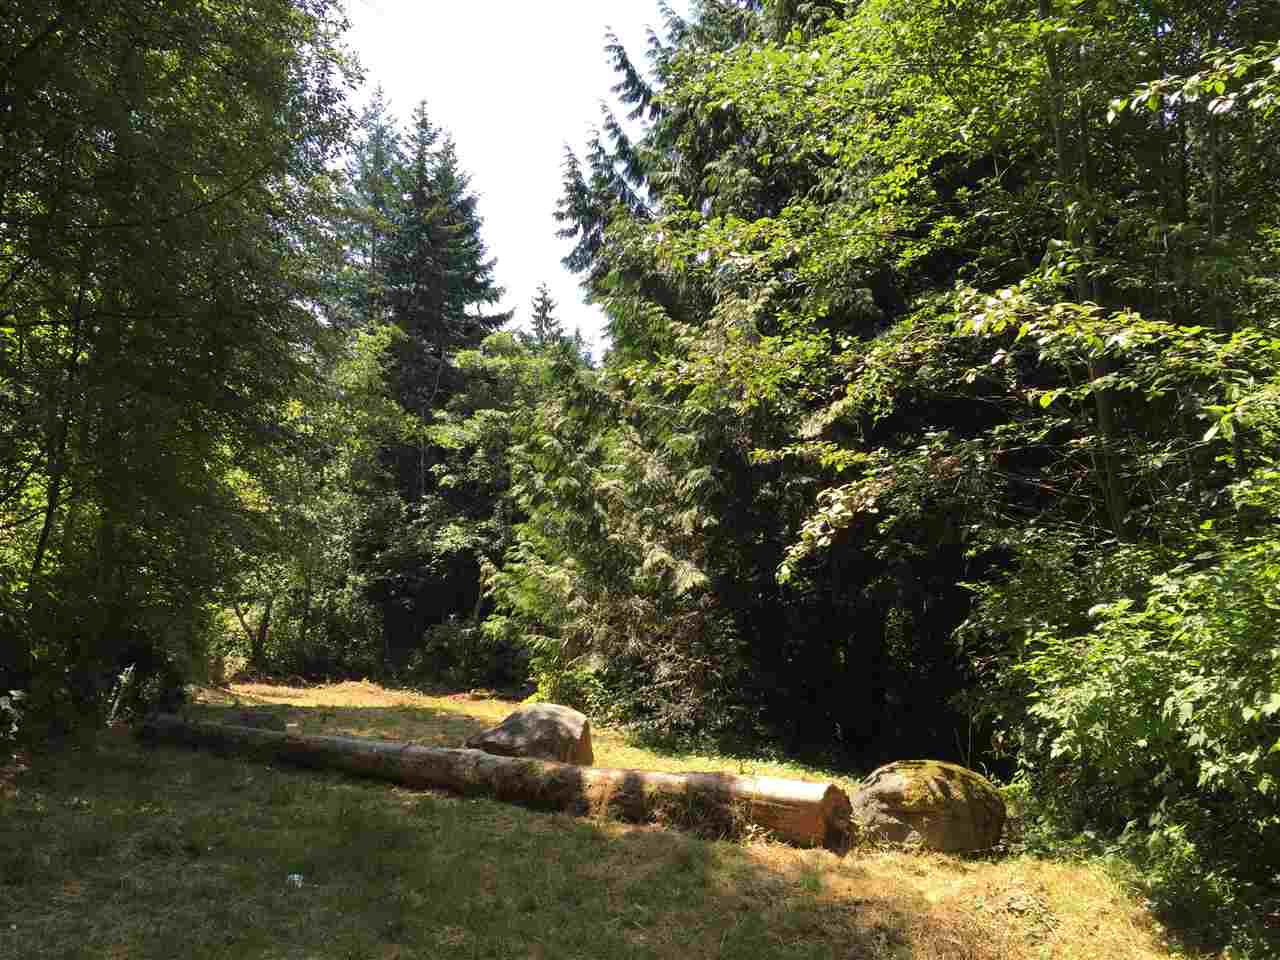 2.1 acres in Gibsons! Build your dream home or hold for investment. This is a lovely treed property bordering End Creek Park and kitty corner to Ocean Park. At the bottom of the property you will find a trail that leads you on a 5 minute walk to the beach. Please call listing realtor for an information package.